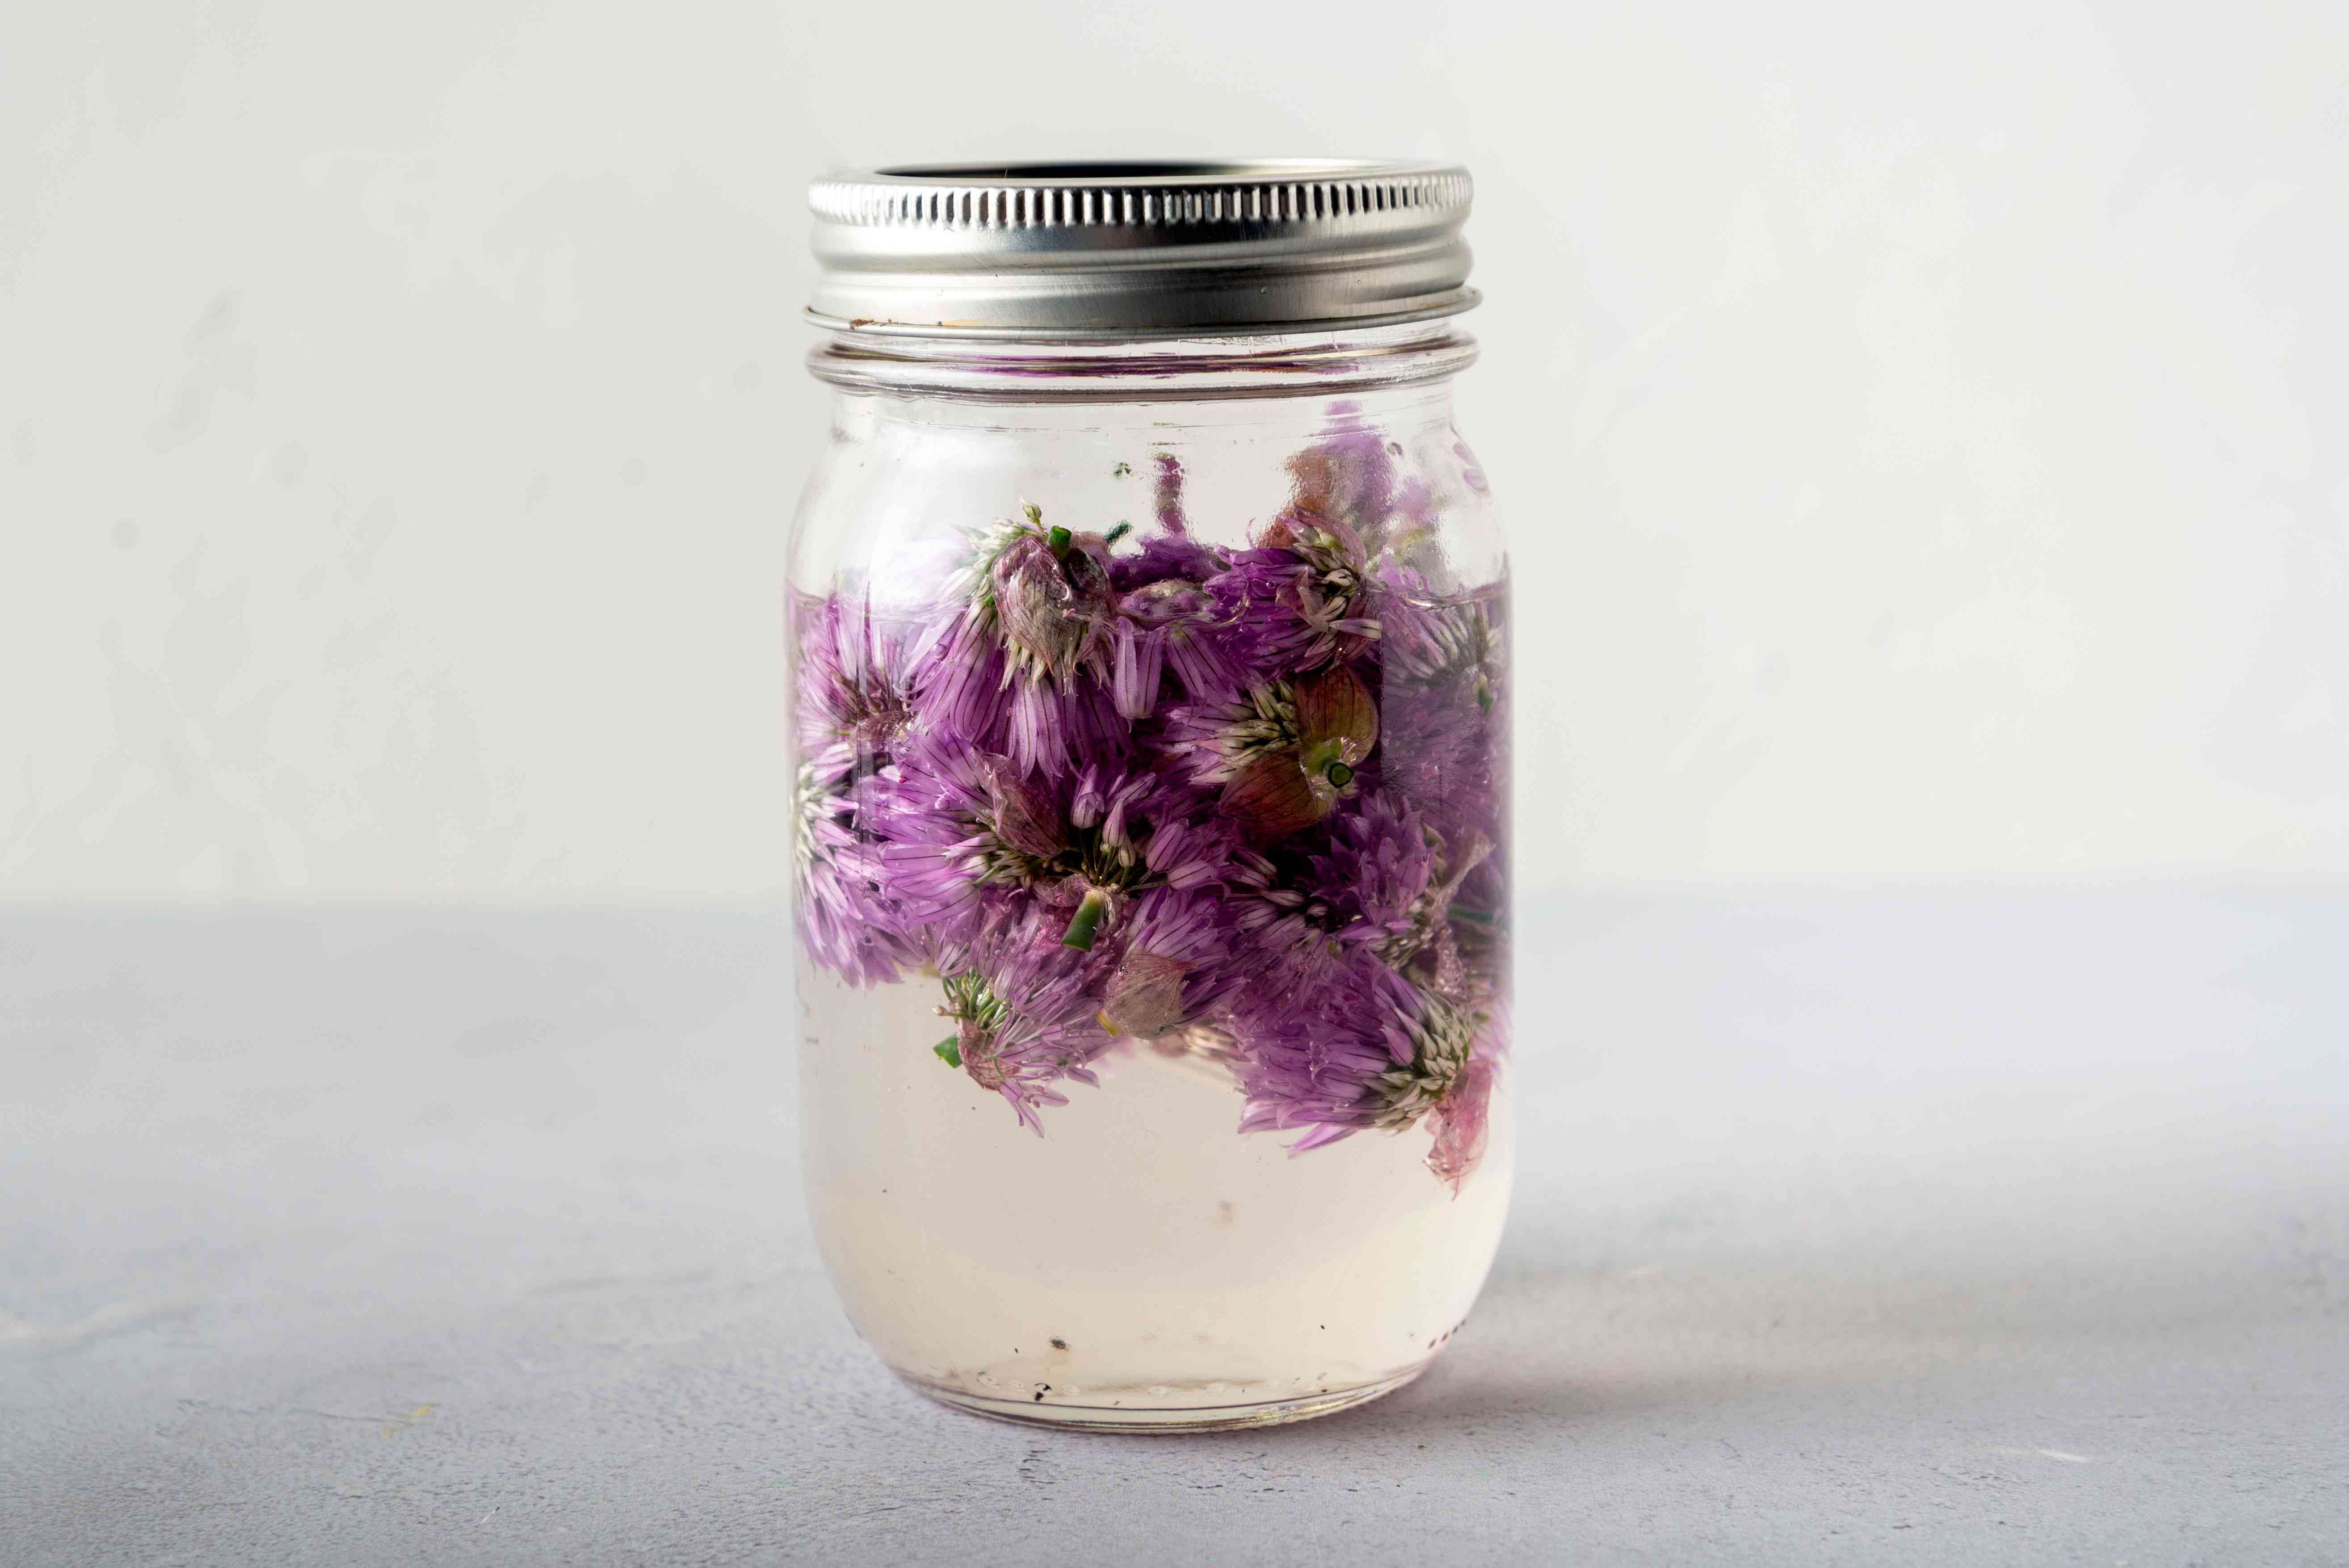 chive blossoms in vinegar in jar with lid on